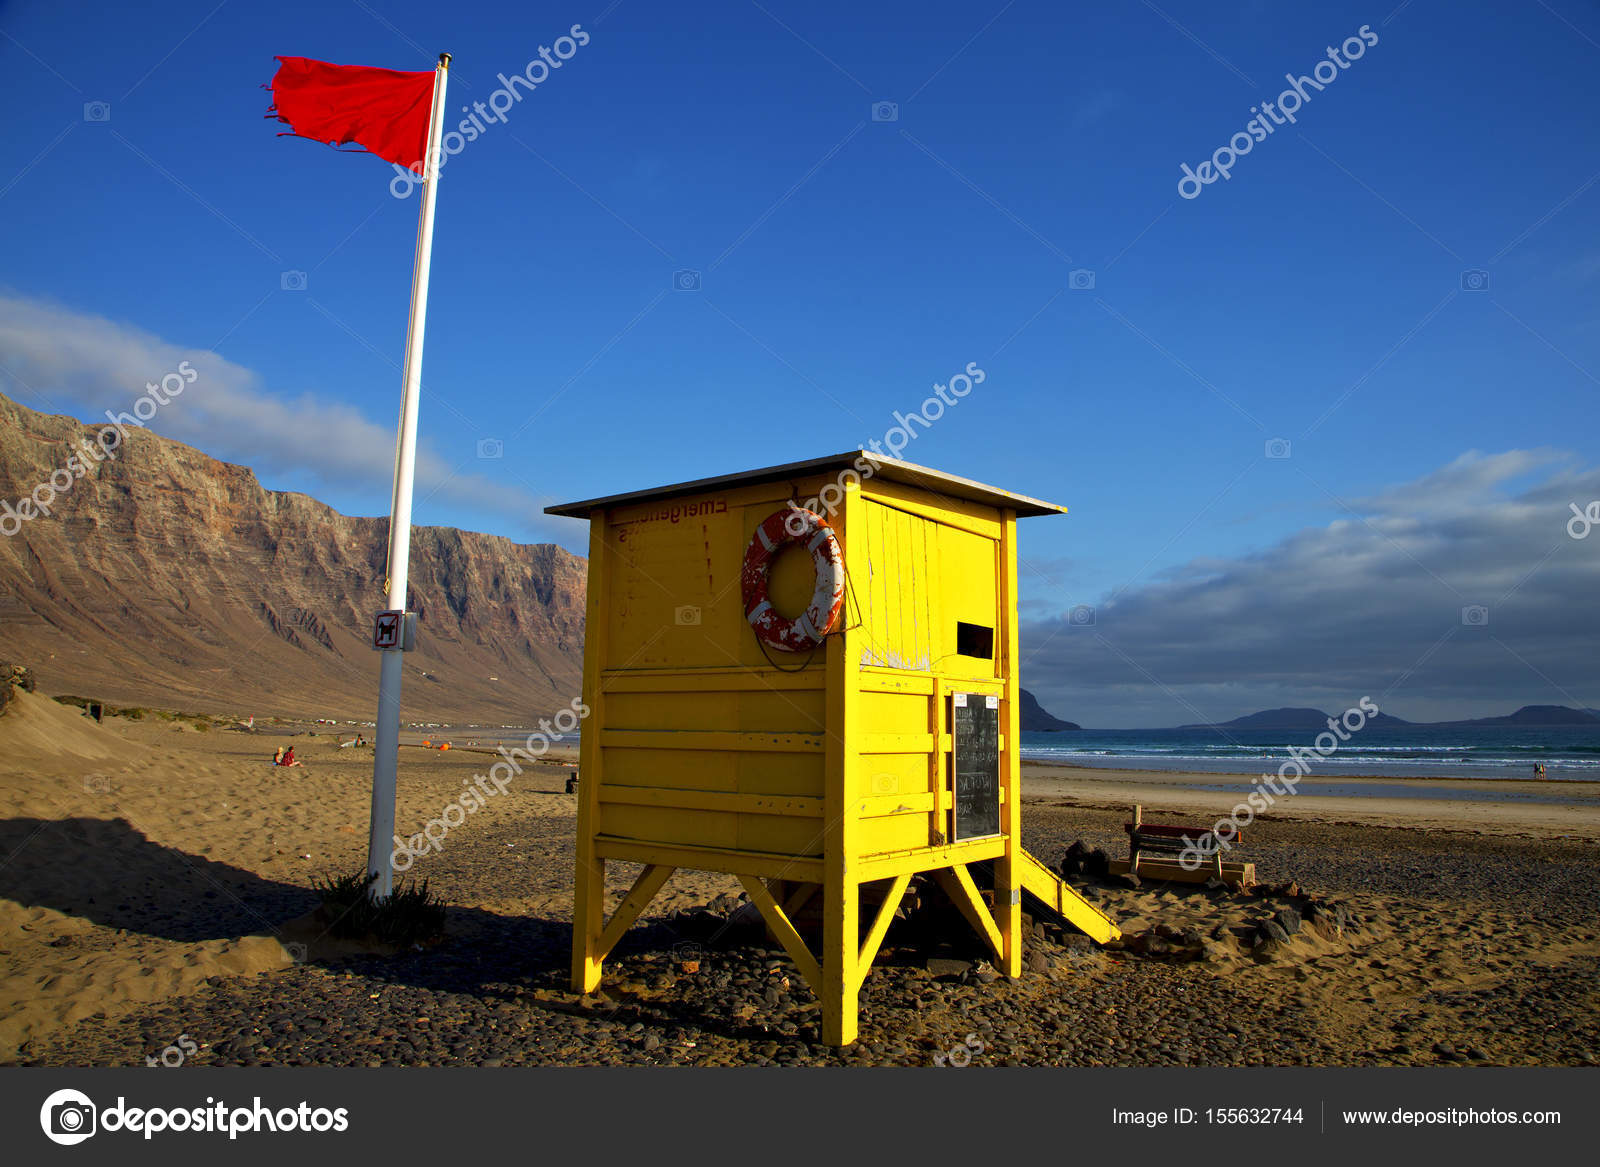 Red Flag Water Lifeguard Chair Cabin Beach Musk Coastline